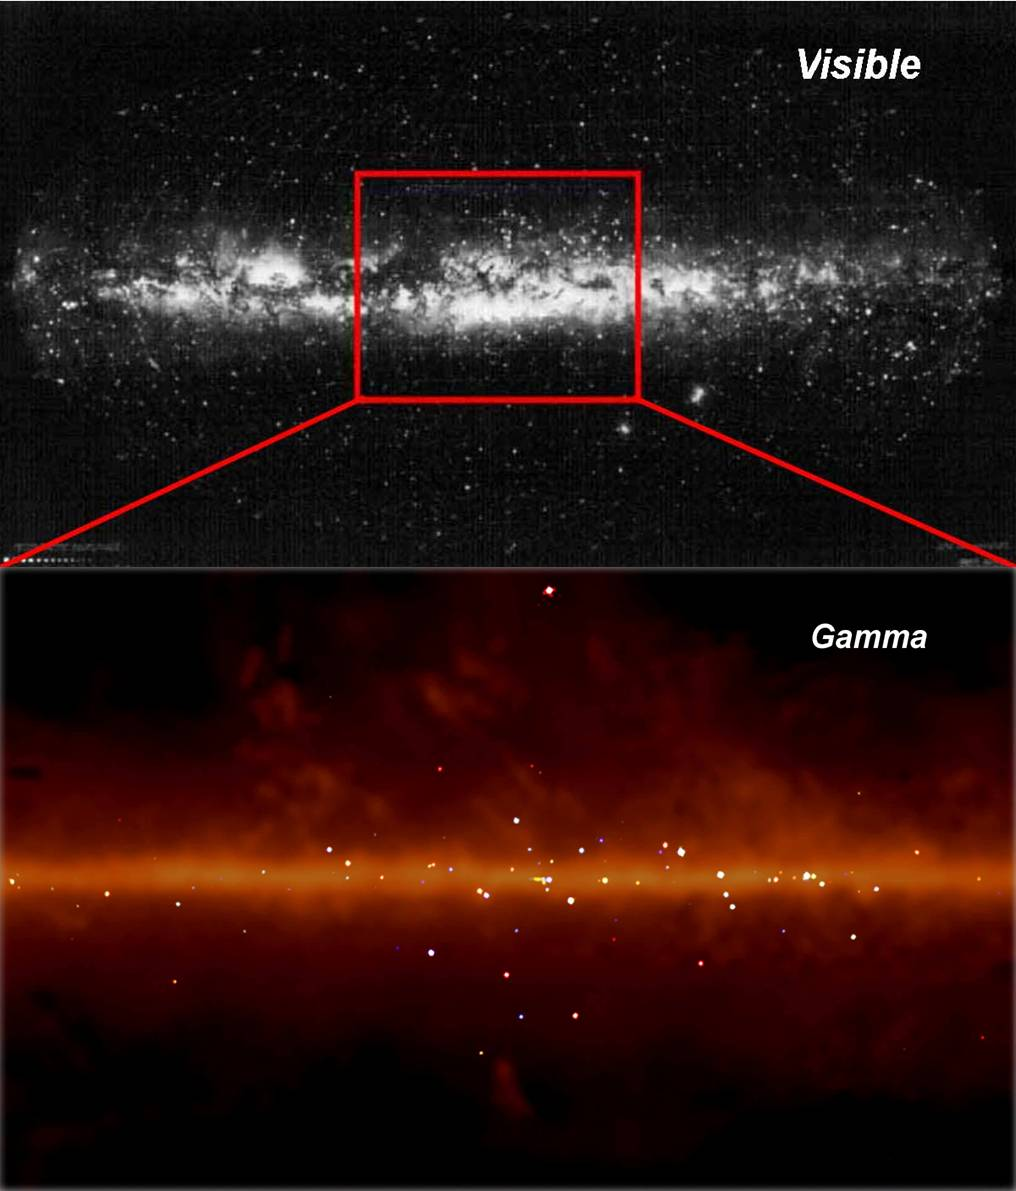 La Galaxie en visible et gamma